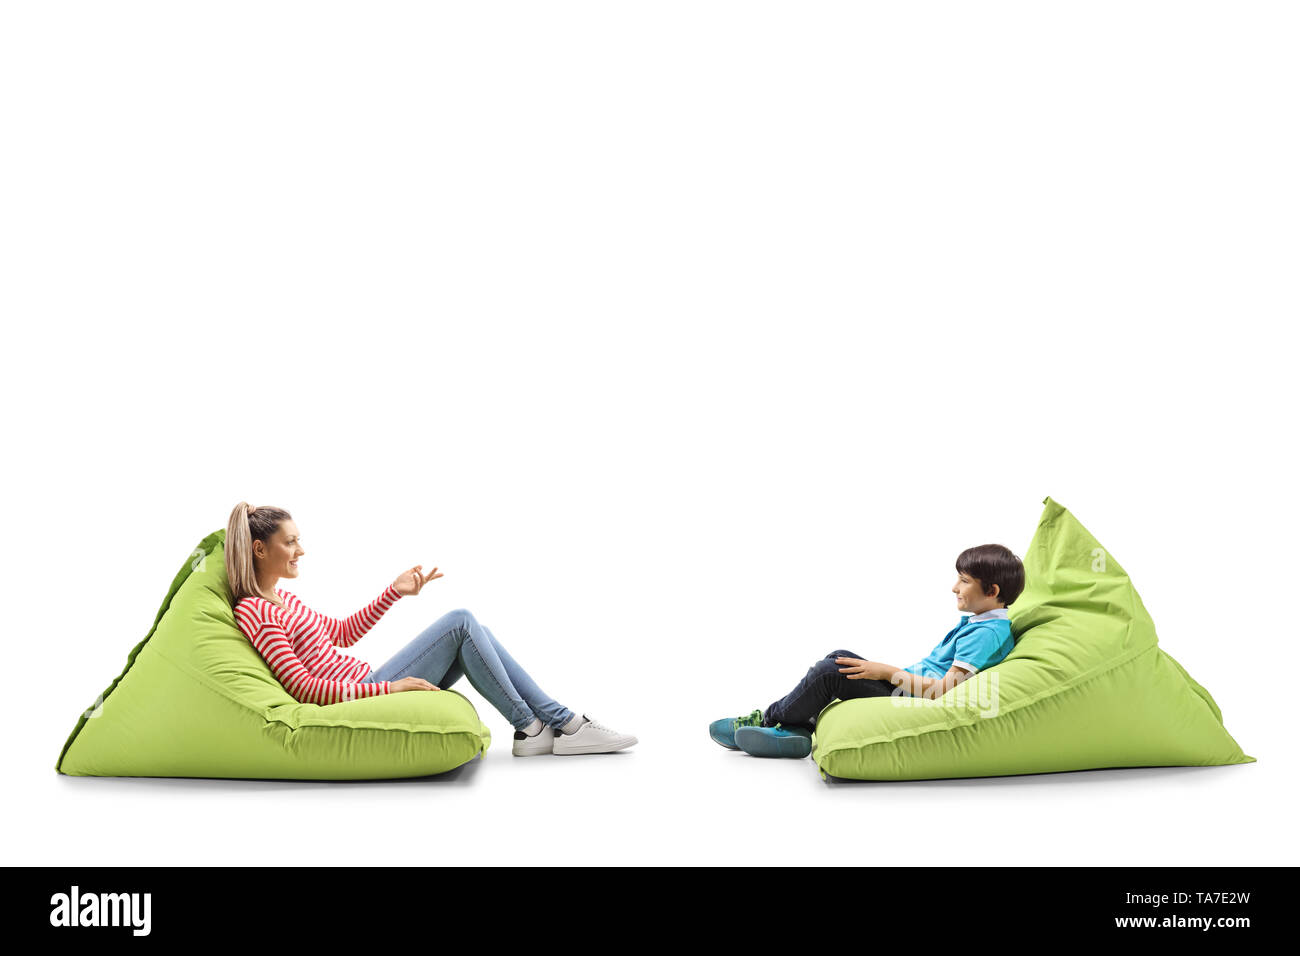 Full length profile shot of a young woman and a male child sitting on bean bags having a conversation isolated on white background - Stock Image